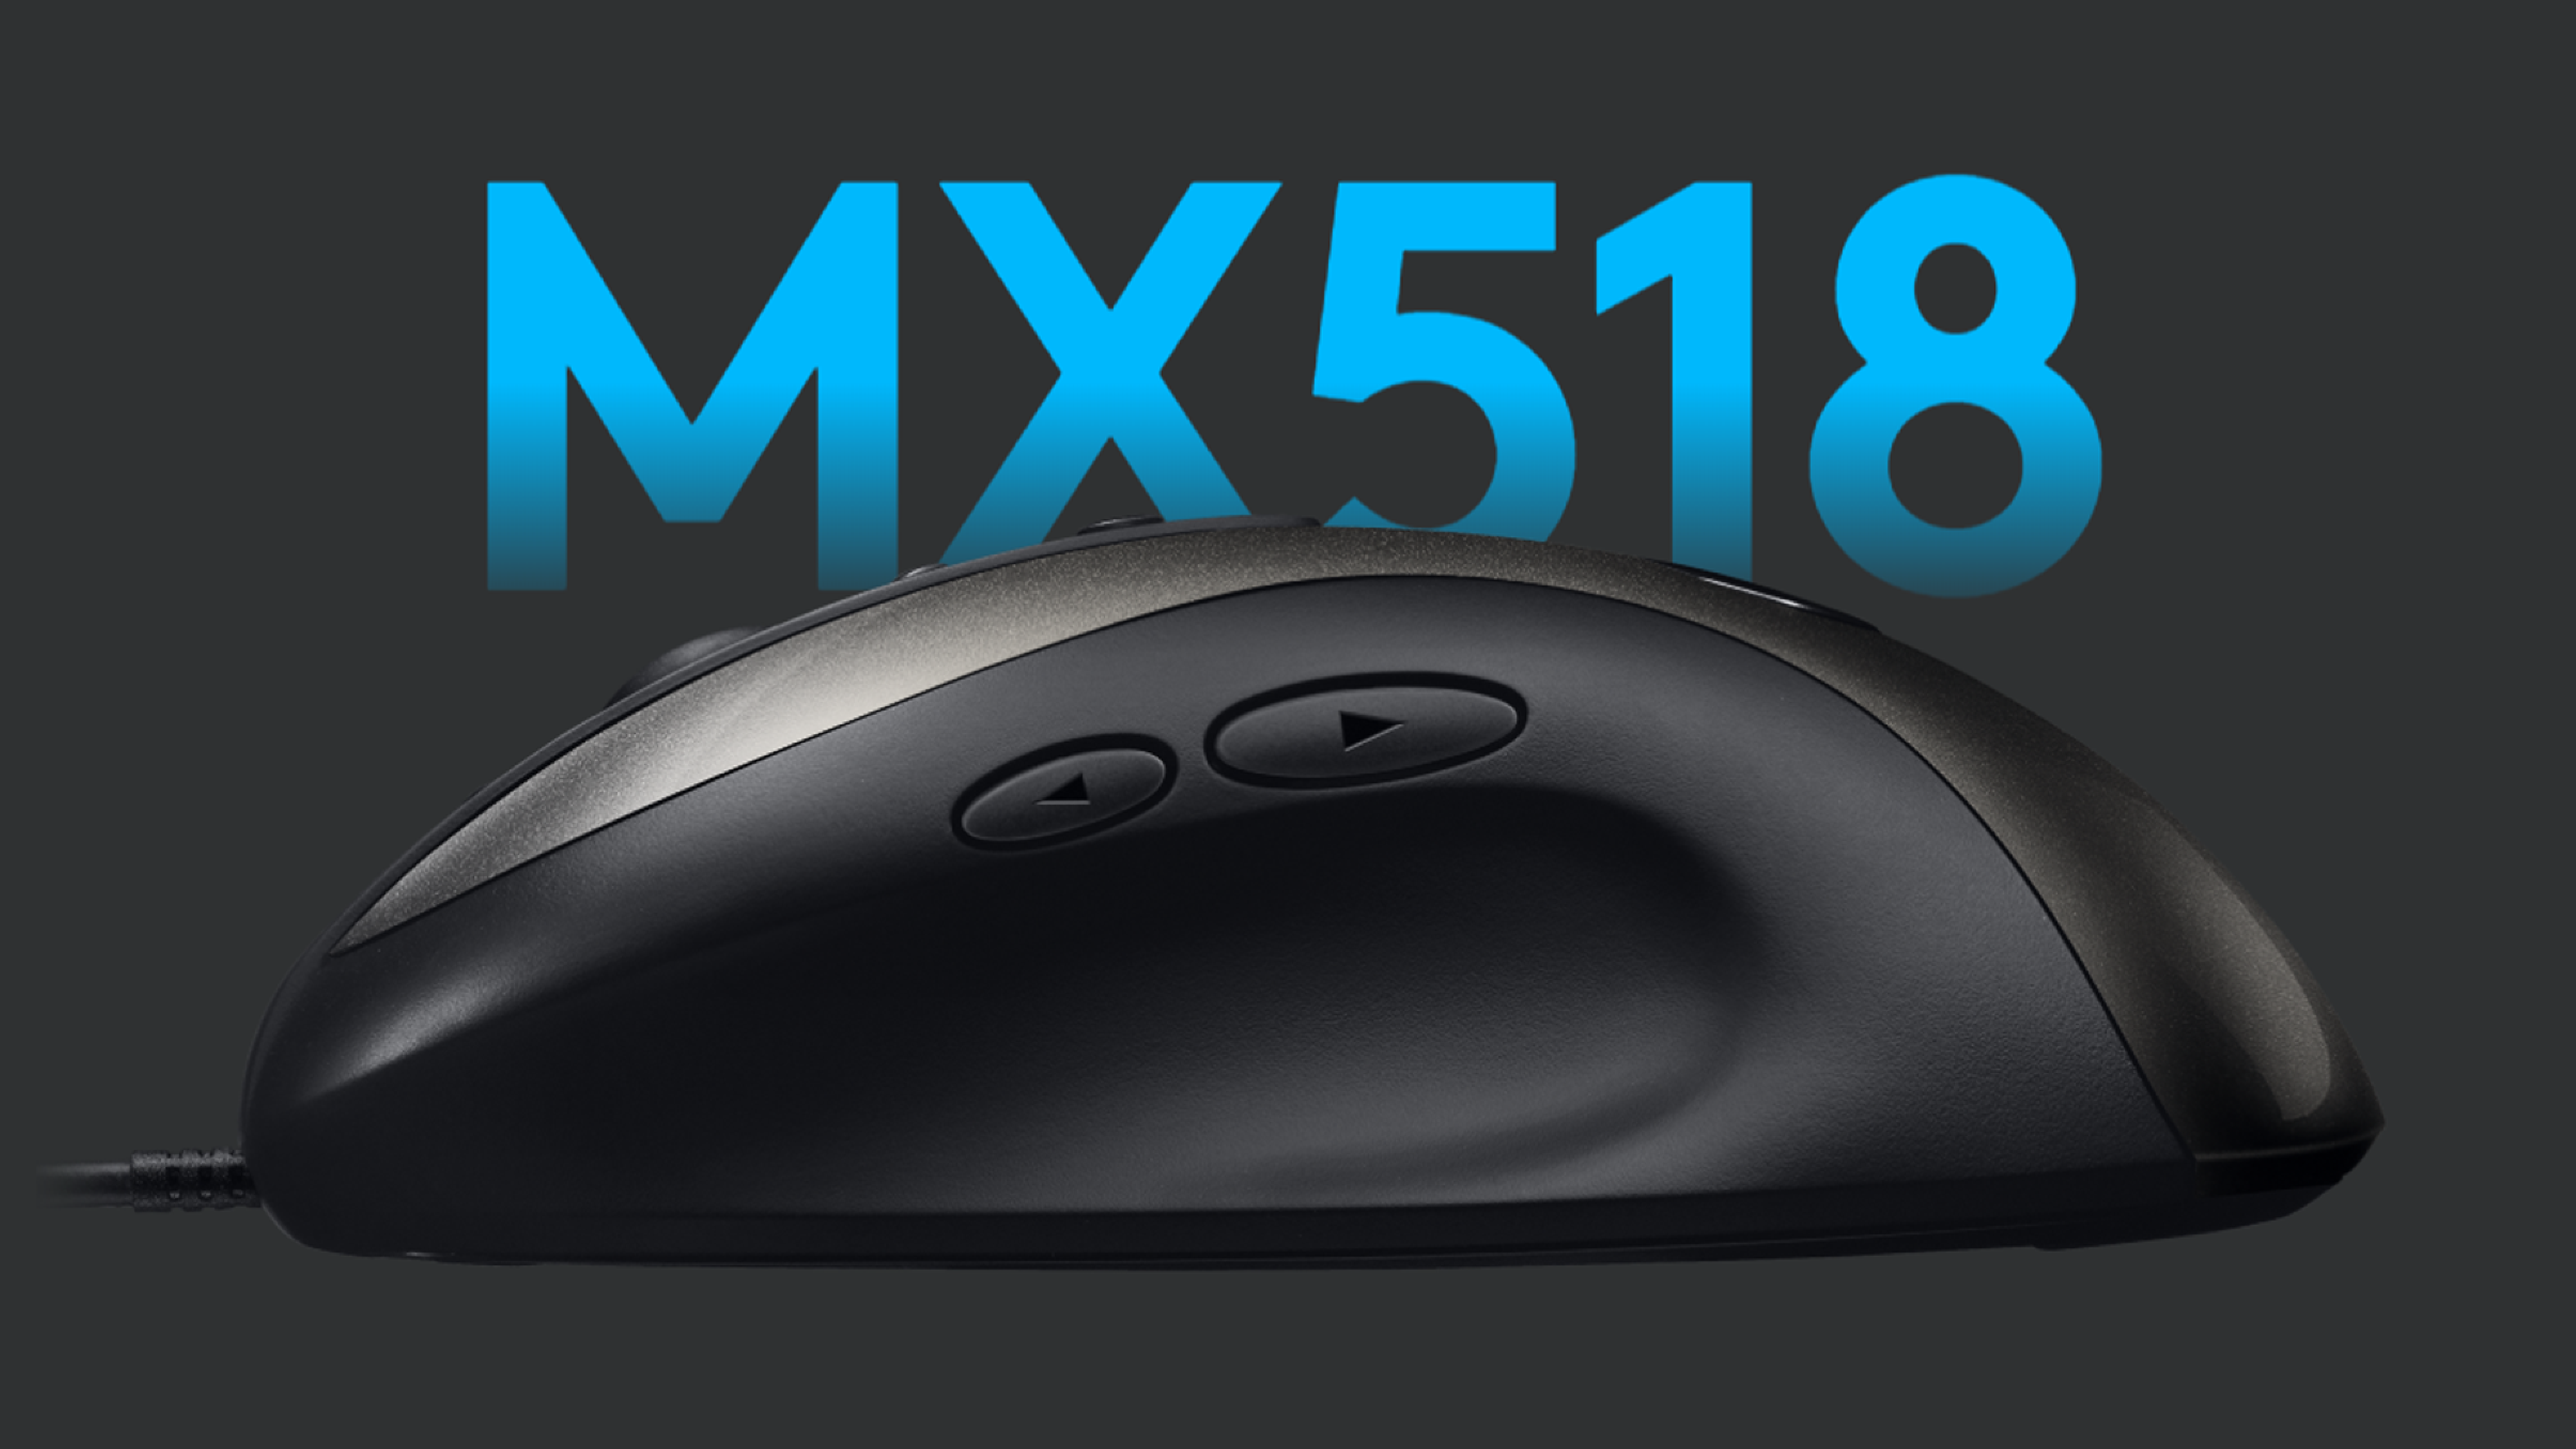 93ebeccc032 Logitech is Reviving the Popular MX518 Gaming Mouse – Review Geek